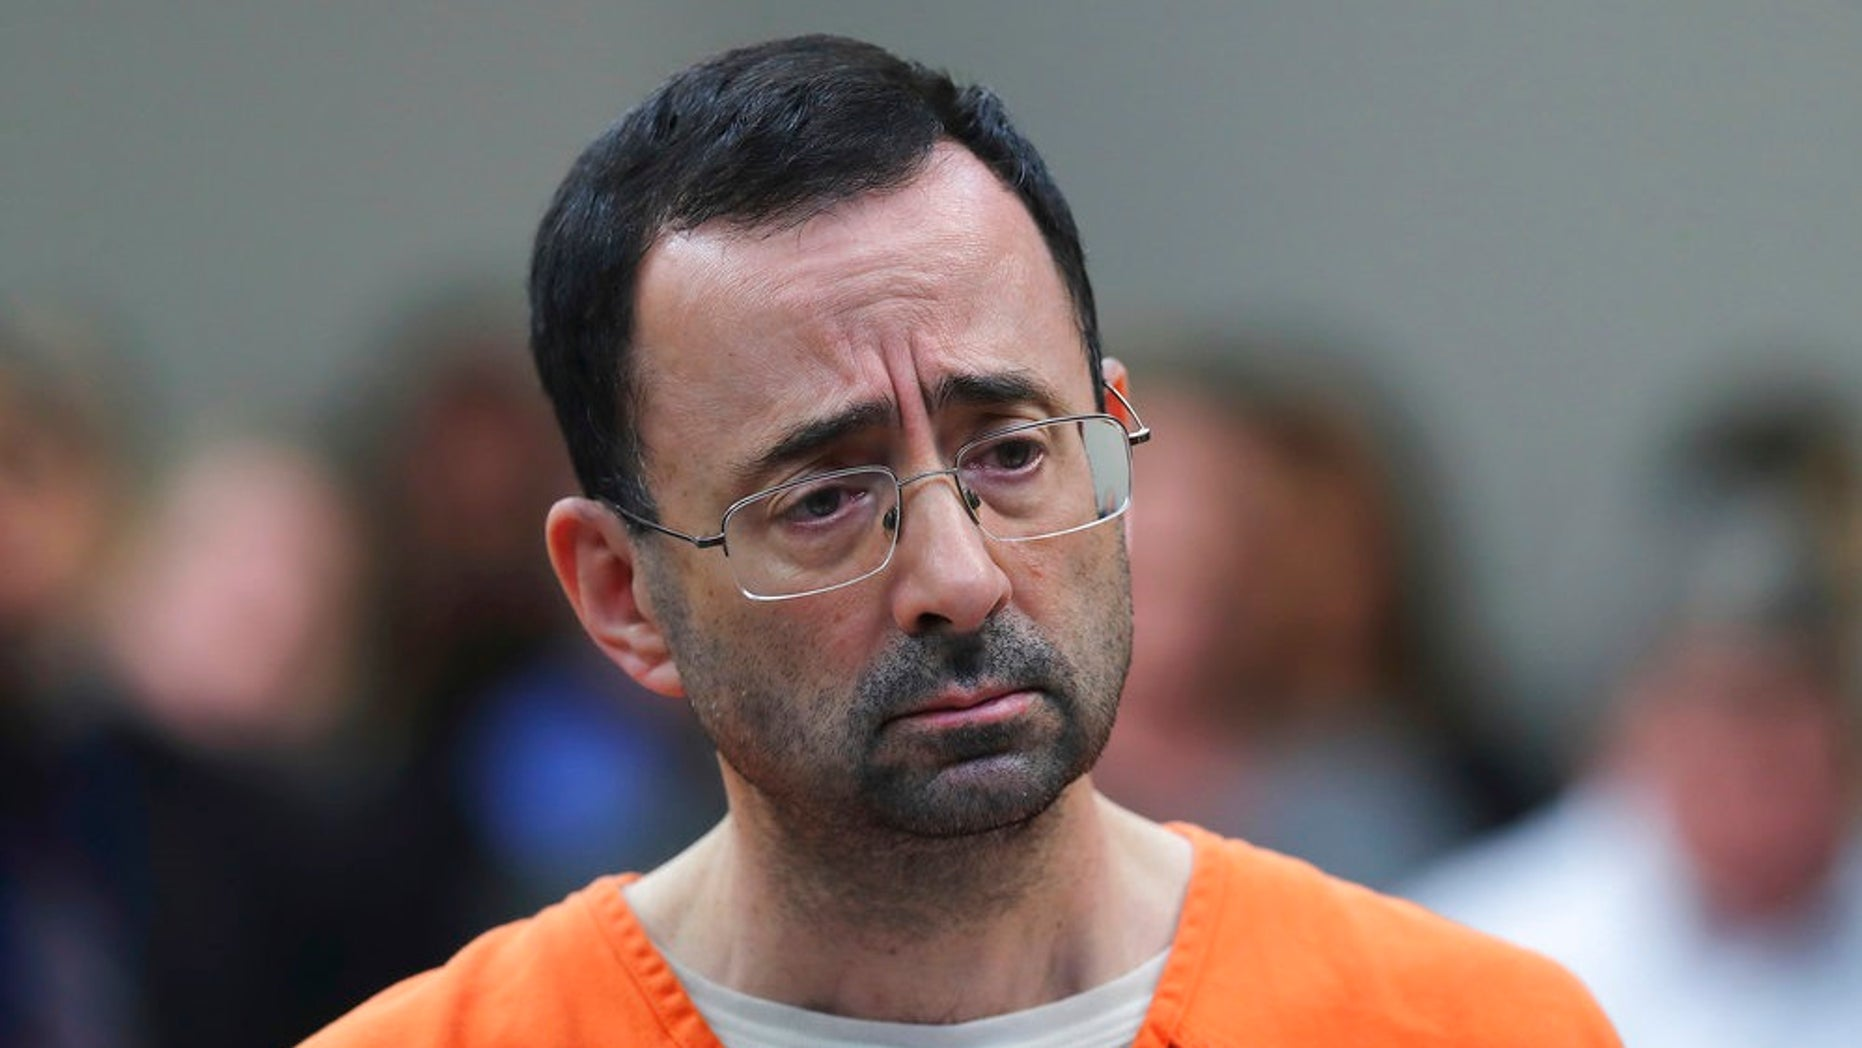 A male gymnast has become the first known male victim to formally accuse Dr. Larry Nassar, 54, of sexual abuse.